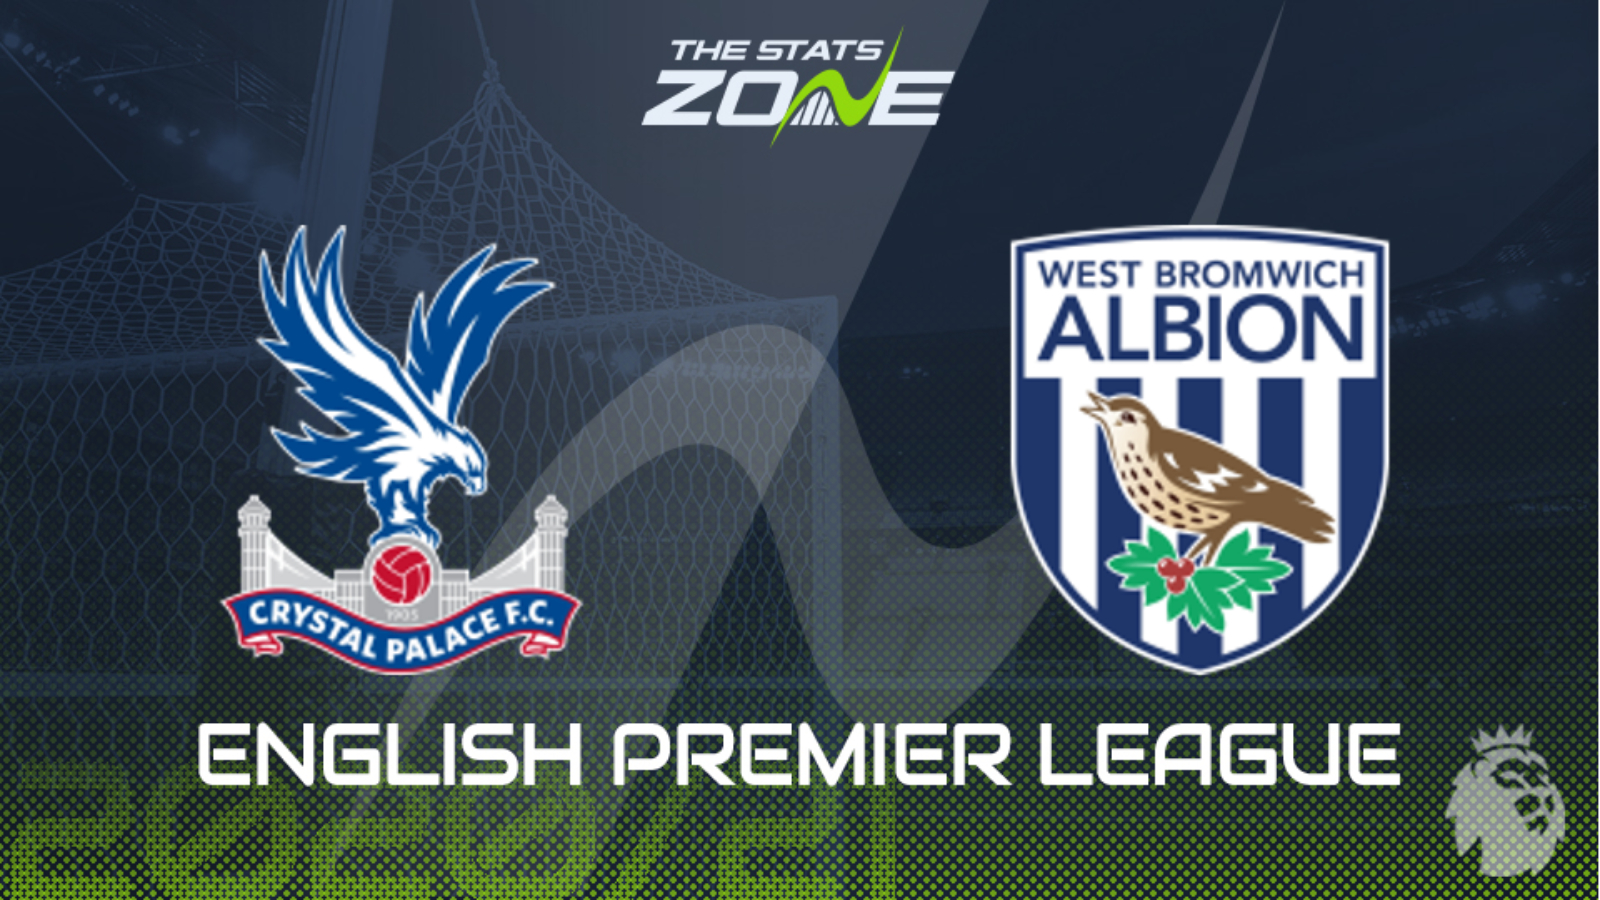 Crystal Palace vs West Brom Highlights – Premier League 2020/21